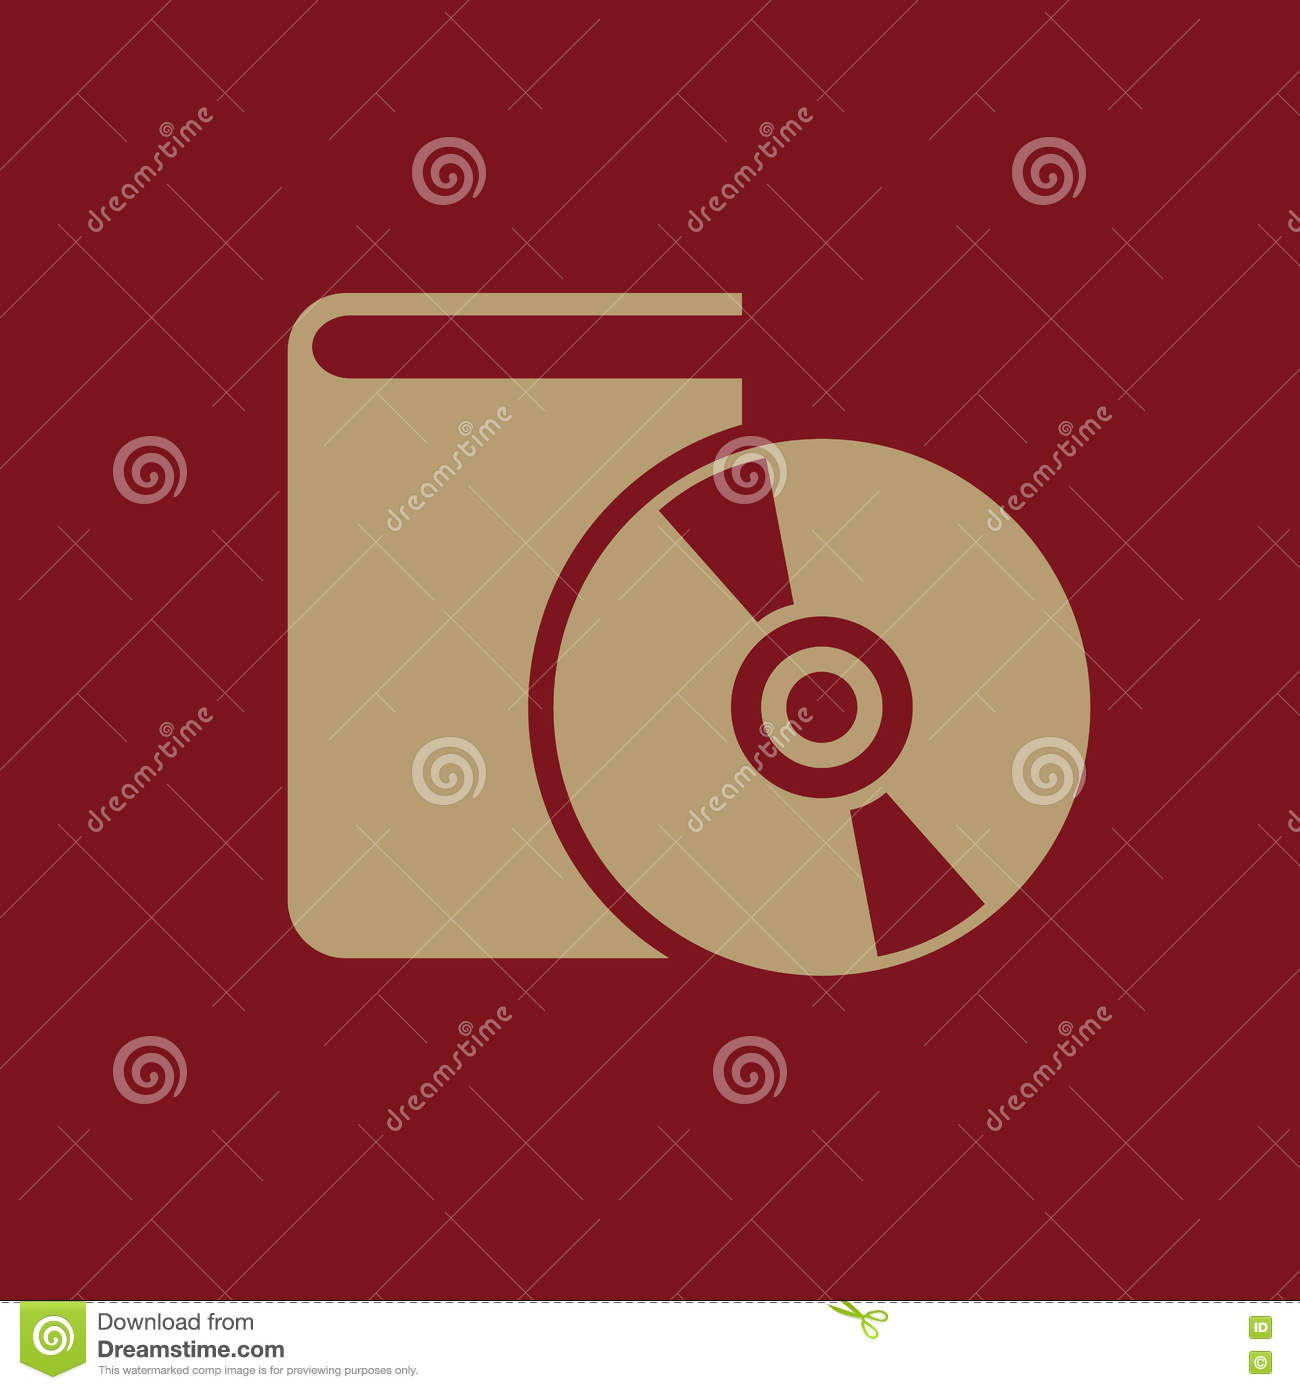 Audiobook icon. vector design. Library, Audiobook symbol. web. graphic. JPG. AI. app. logo. object. flat. image. sign